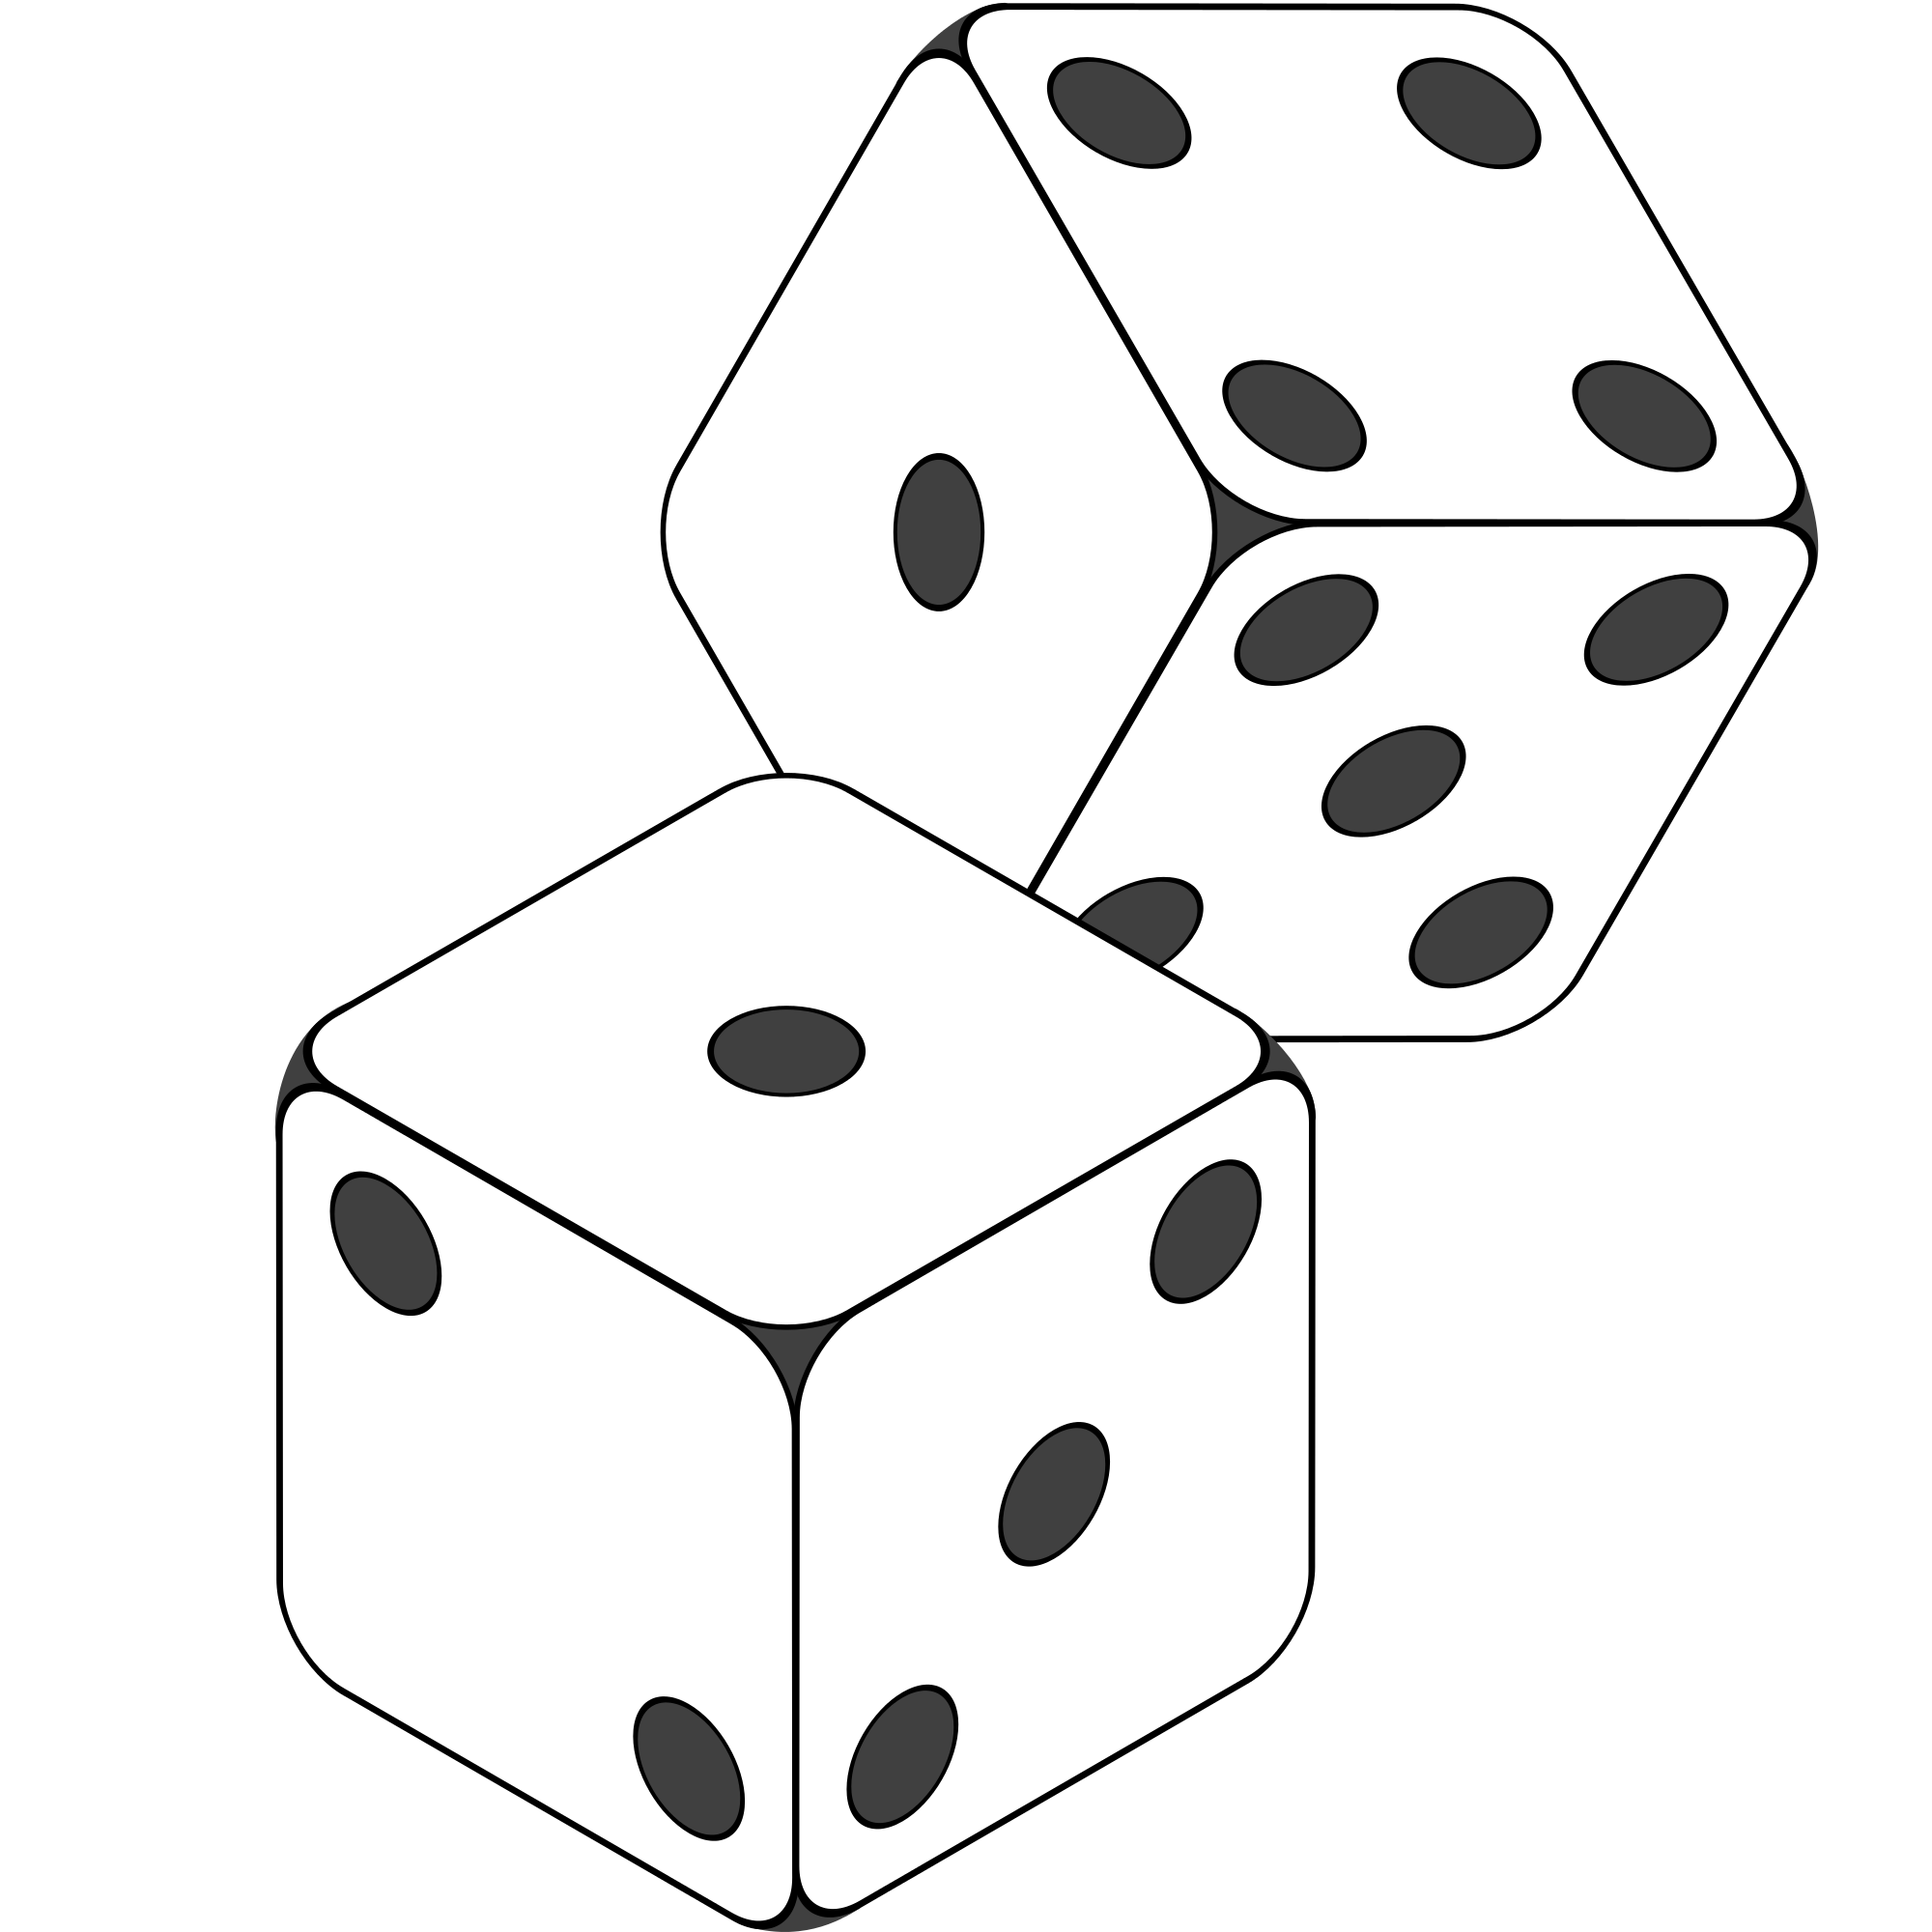 File:2-Dice-Icon.svg - Wikimedia Commons